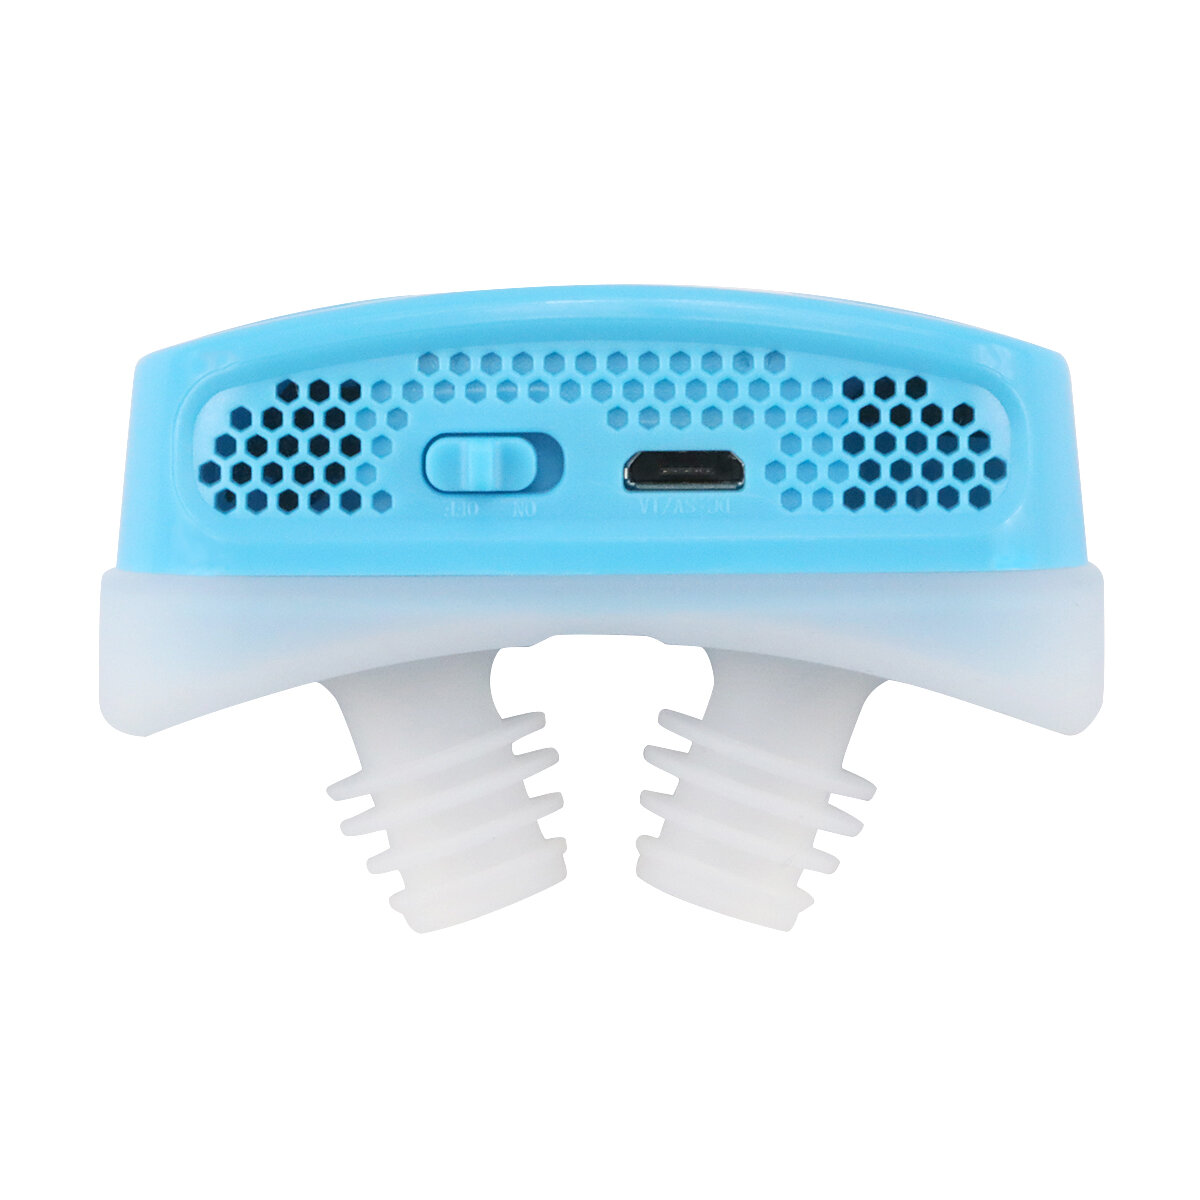 USB Rechargeable Snore Stopper Anti Snore Device PM2.5 Air Purifier Reduce Snore Sleeping Aid Nose Clip